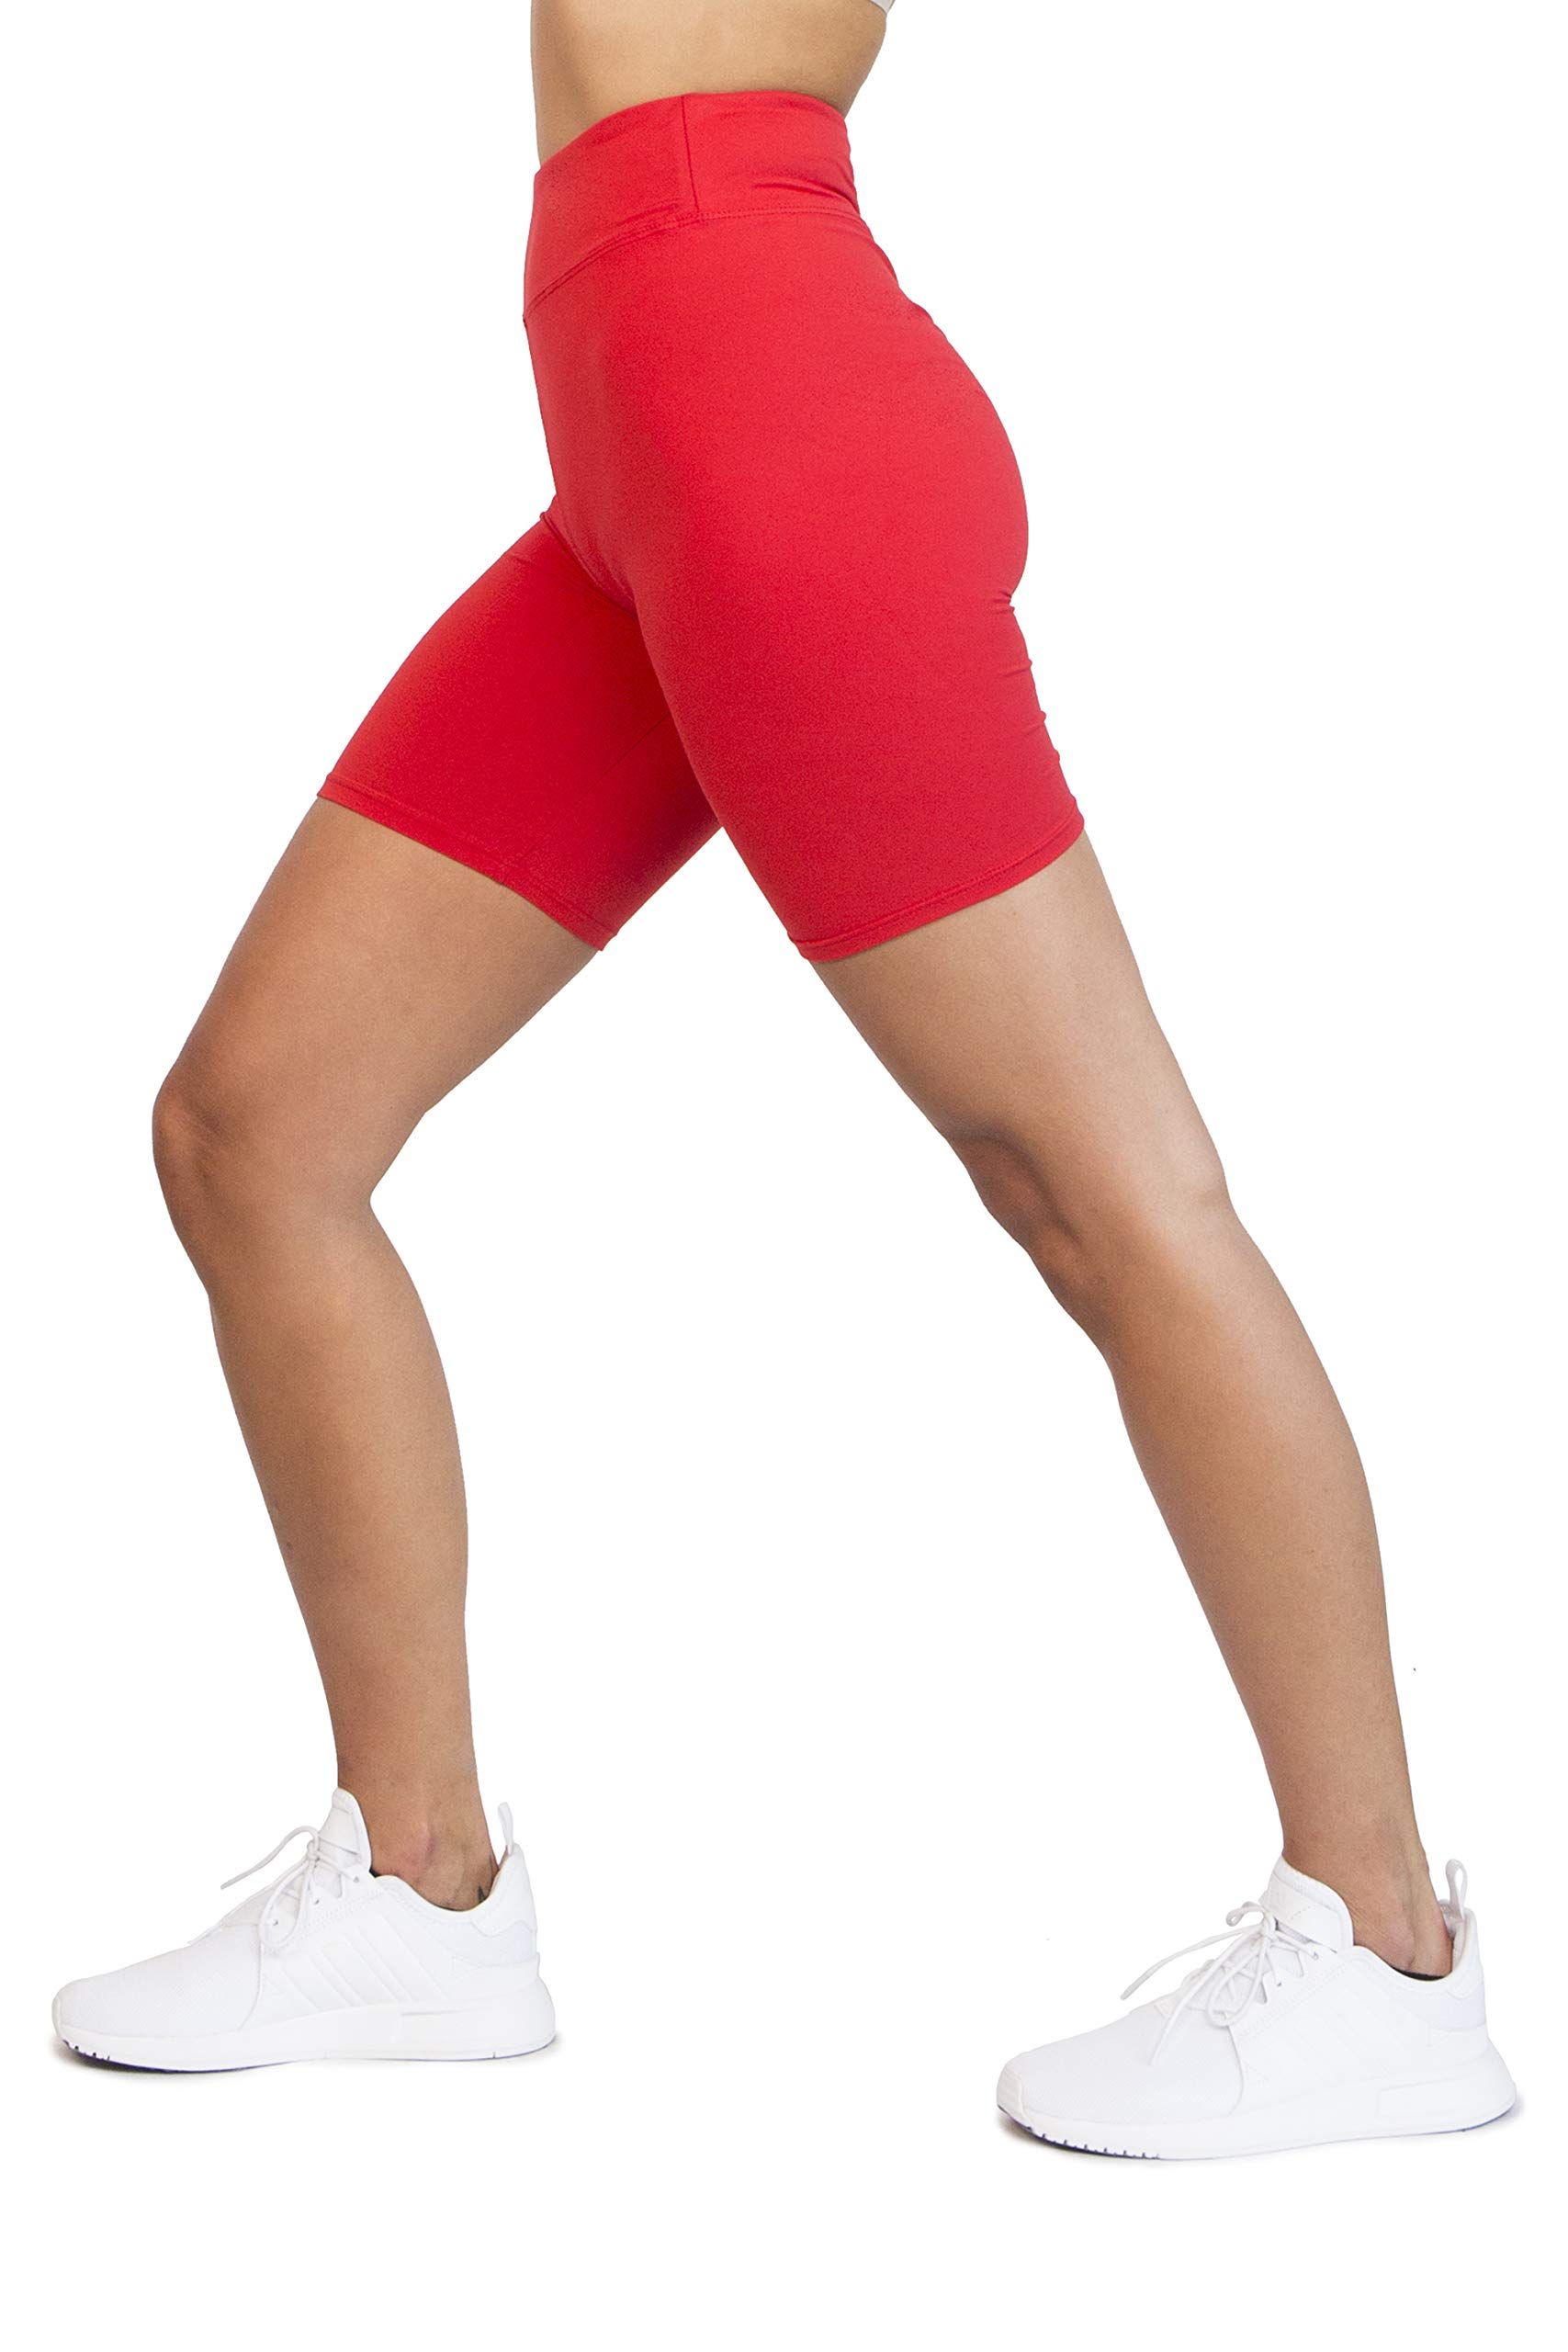 Ocommo Biker Shorts for Women High Waist (3 Inch), Great as Thigh Saver Shorts, Shorts for Under Dresses, or Biker Shorts Women - Small to Plus Size 2XL Red by OCOMMO